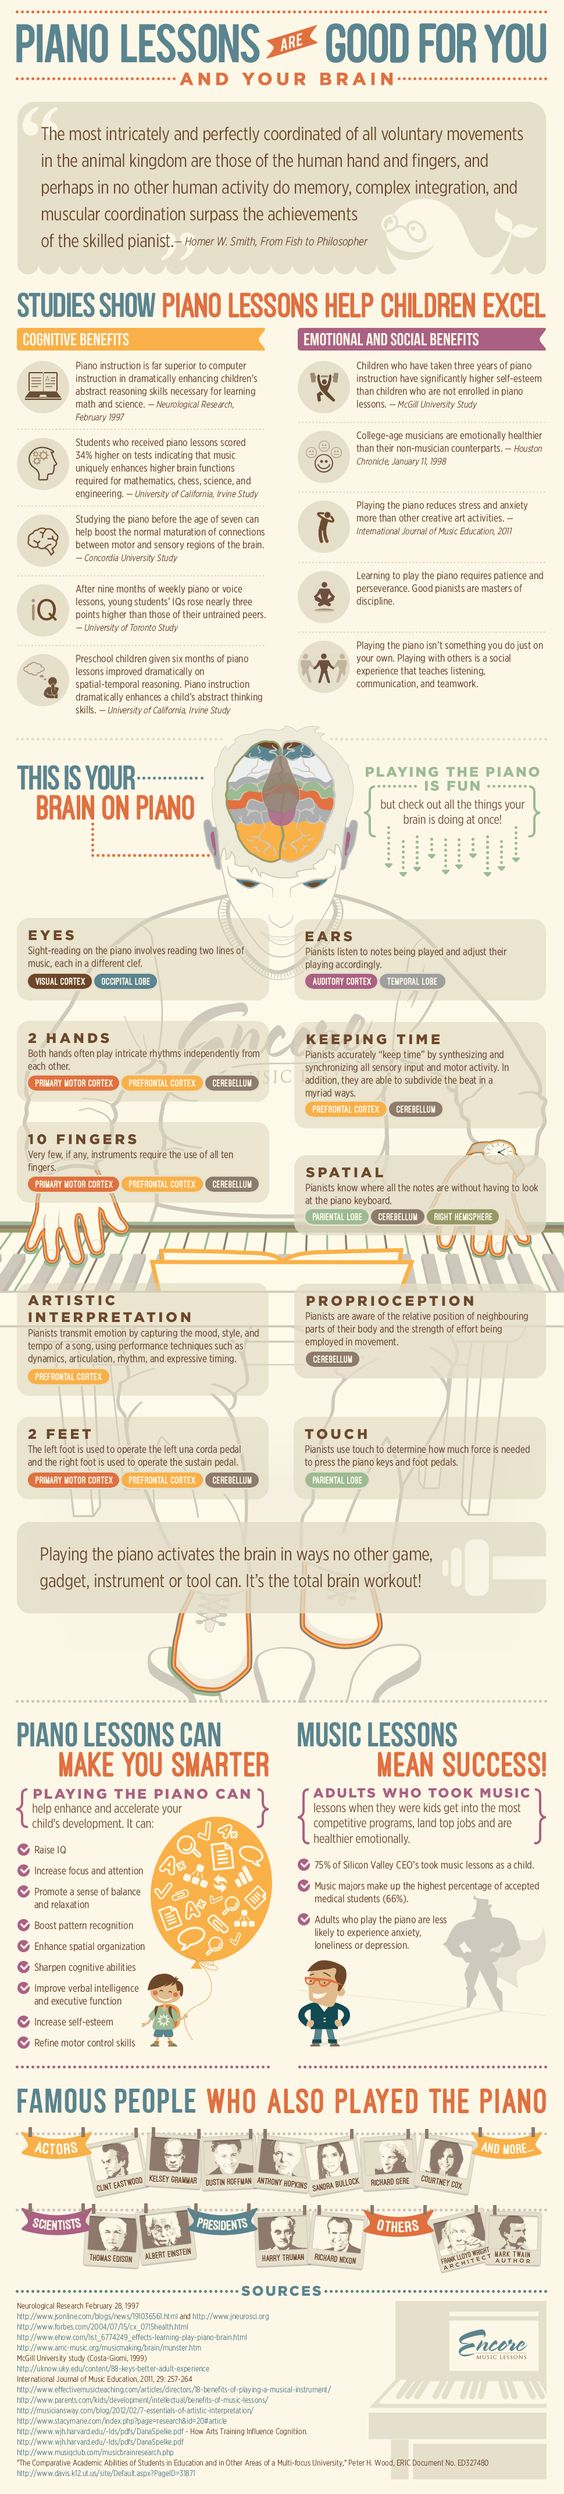 benefits of piano and music